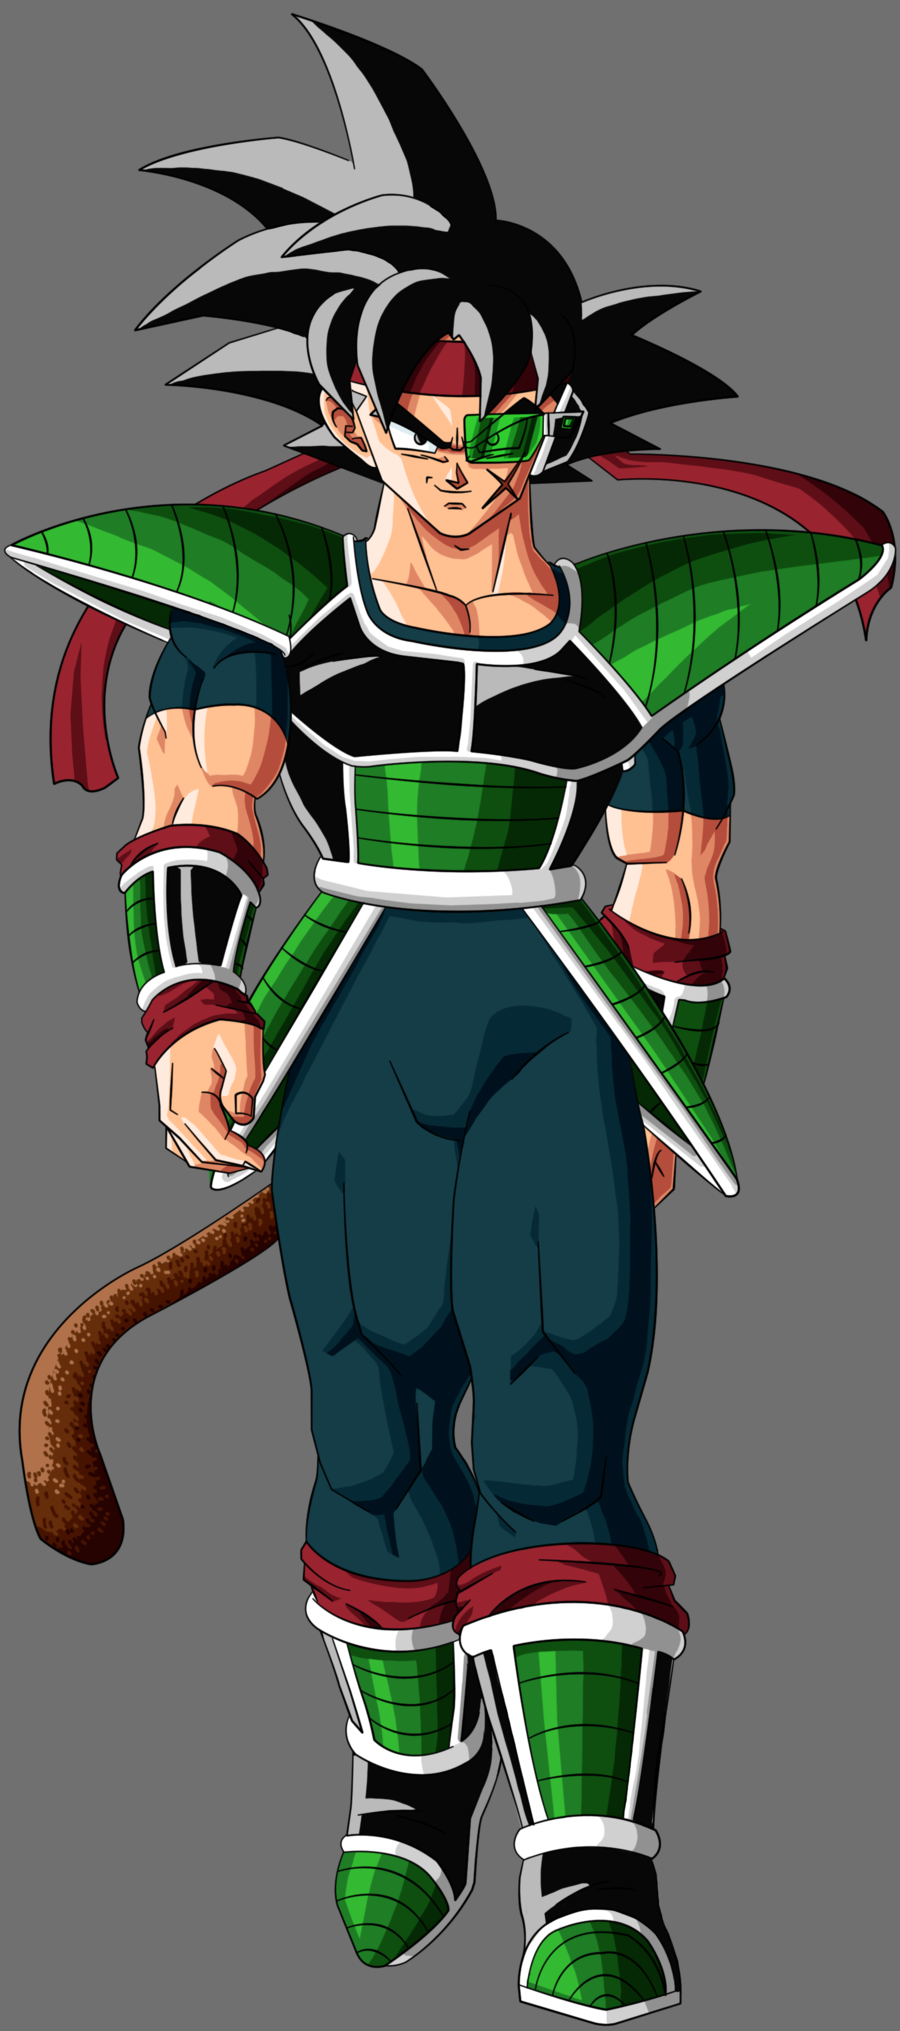 Bardock s main appearance throughout the series Bardock